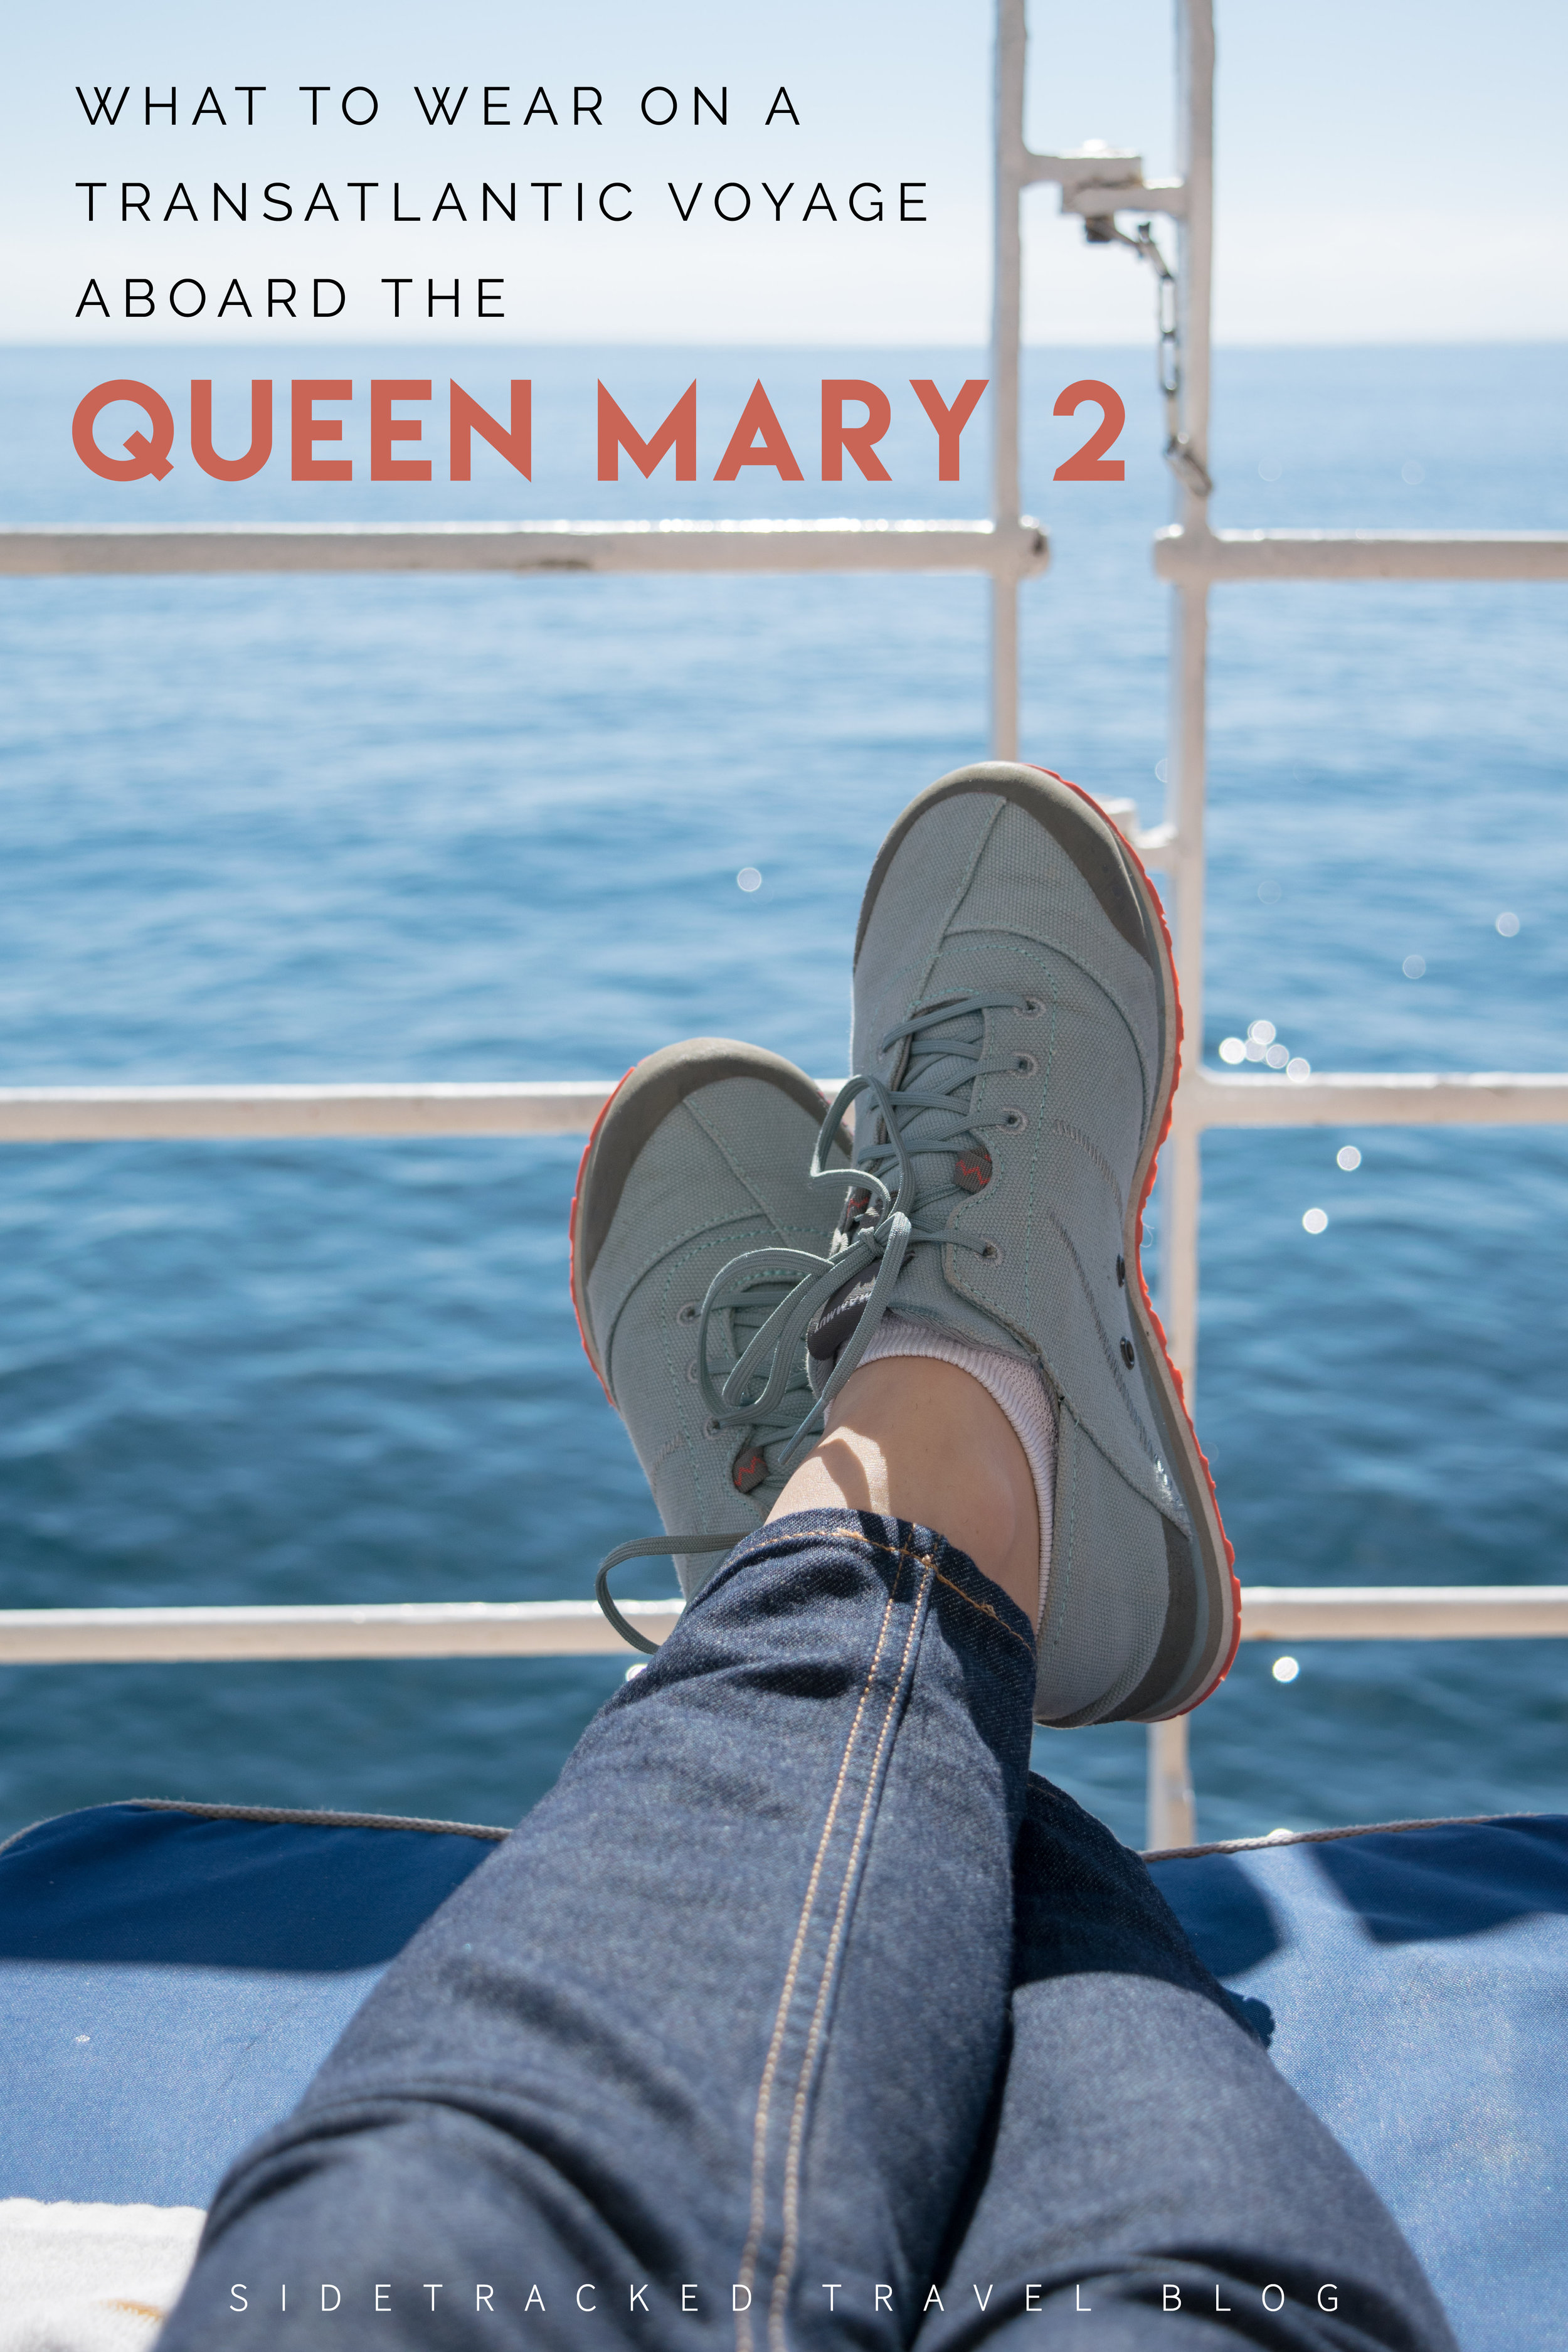 In this article,I share my experience and advice for traveling minimally (and lightly)on board the Queen Mary 2 in the hopes of making your packing process smoother.